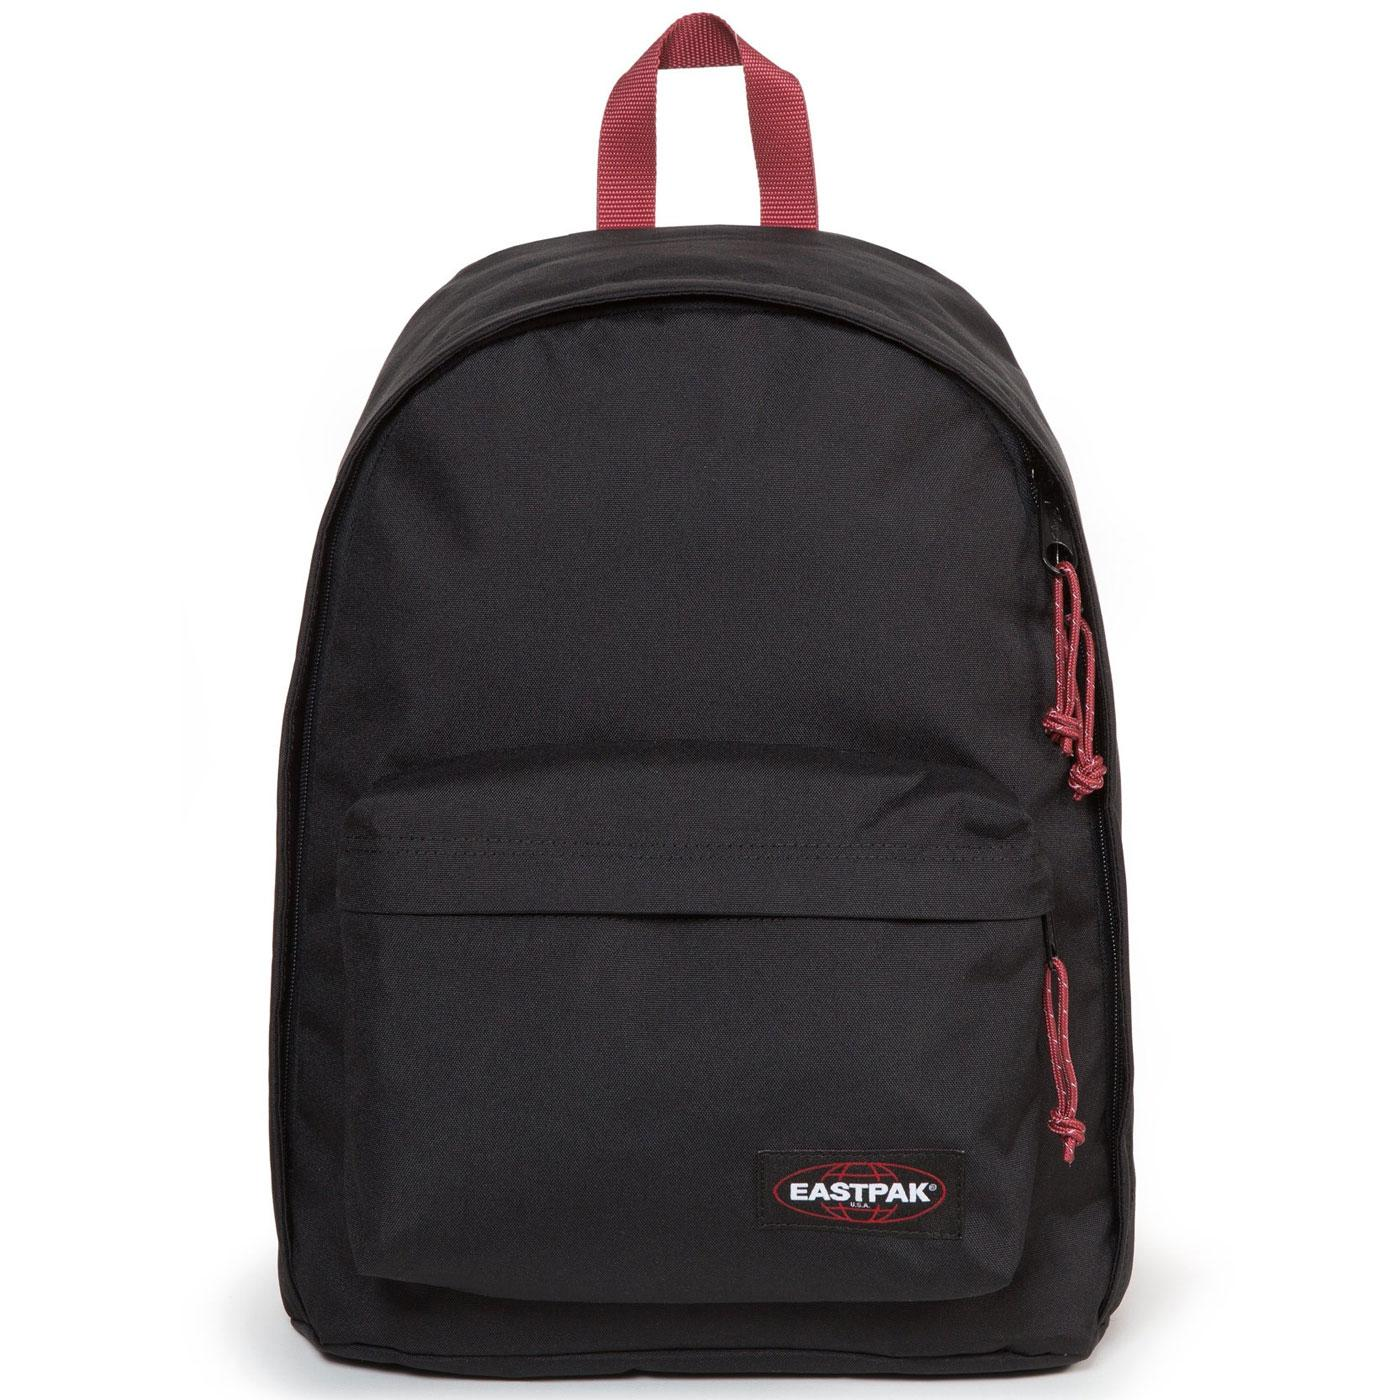 Out Of Office EASTPAK Colour Pop Laptop Backpack B